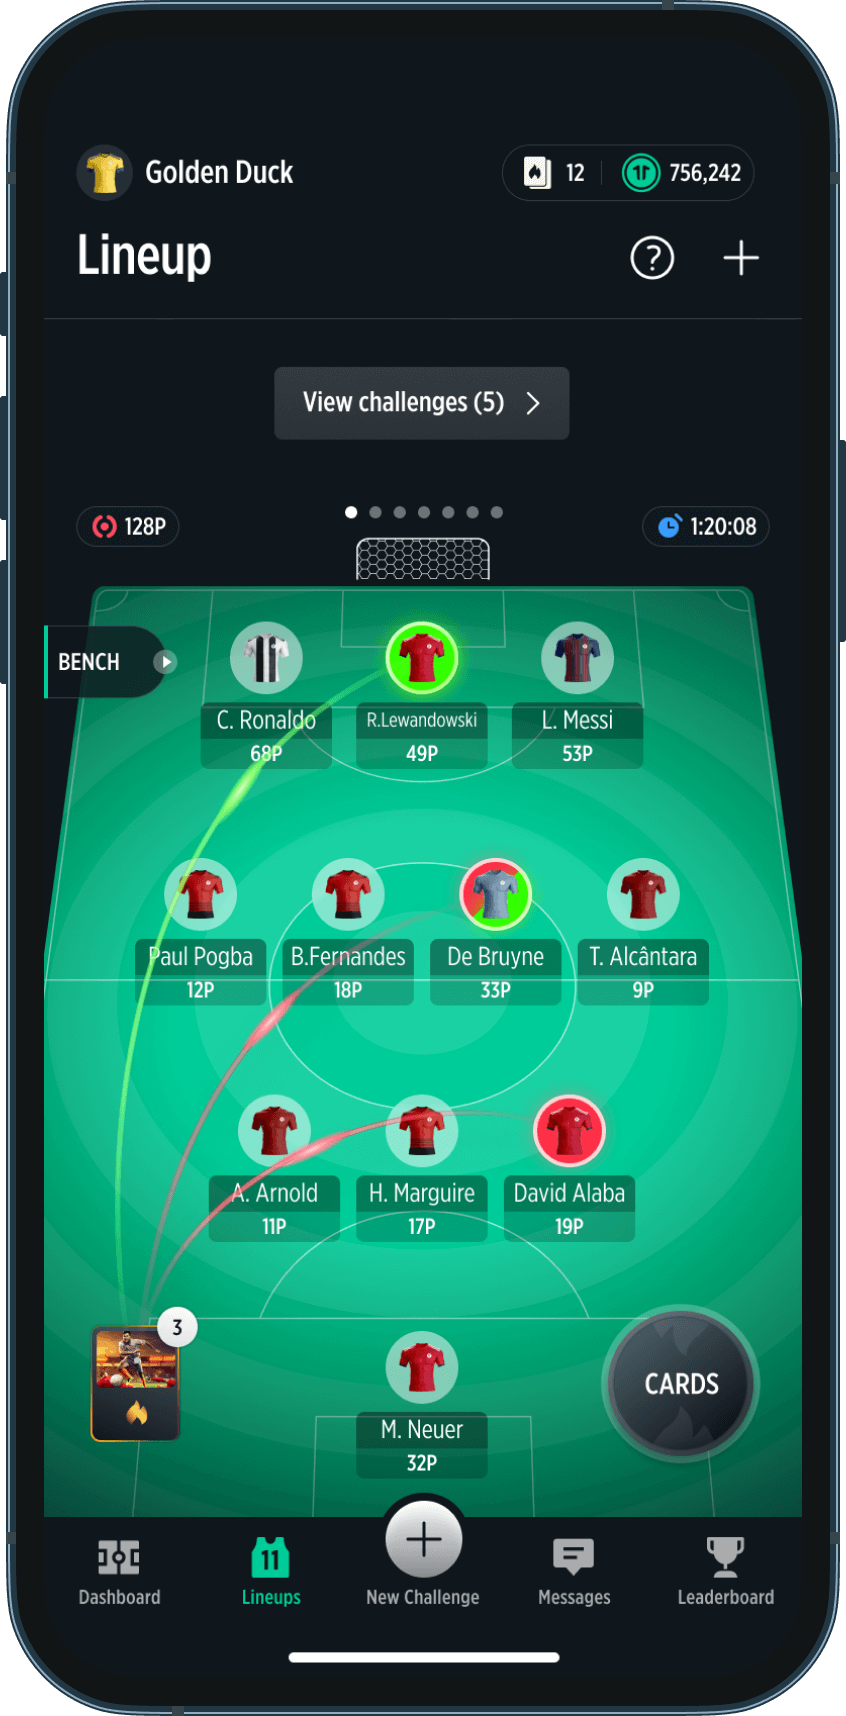 TrophyRoom - The Fantasy Football Game